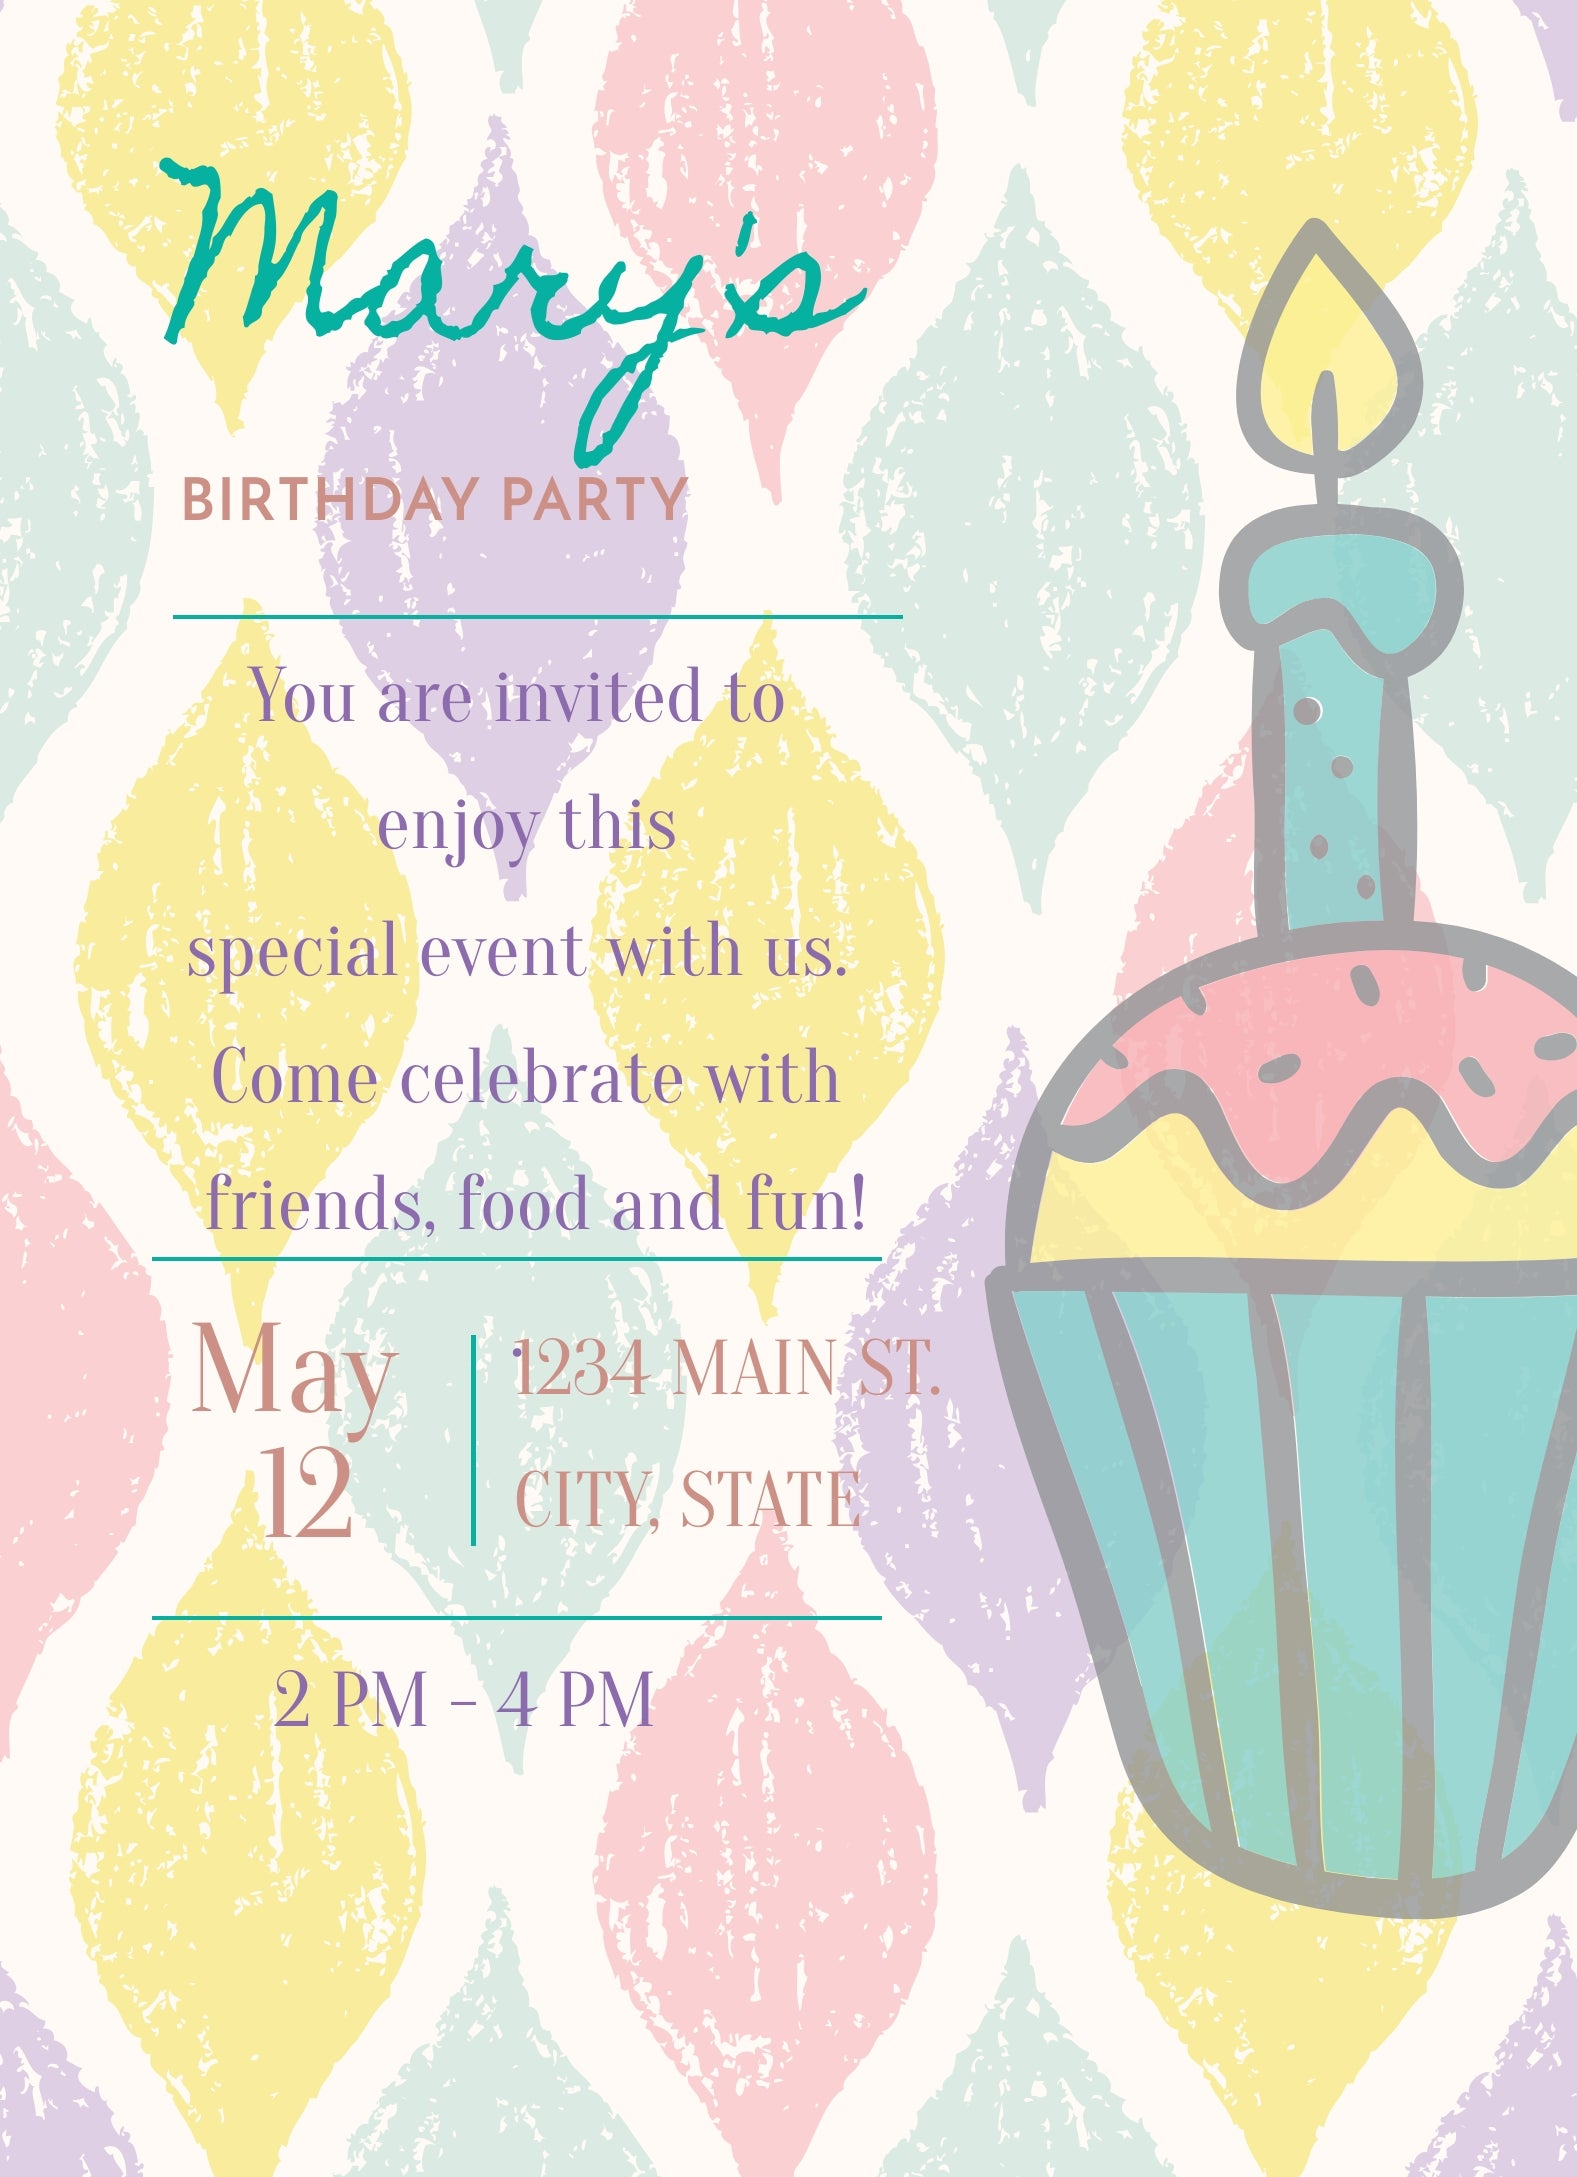 Cupcake Birthday Invitation Editable Download - Sunny Jar Designs